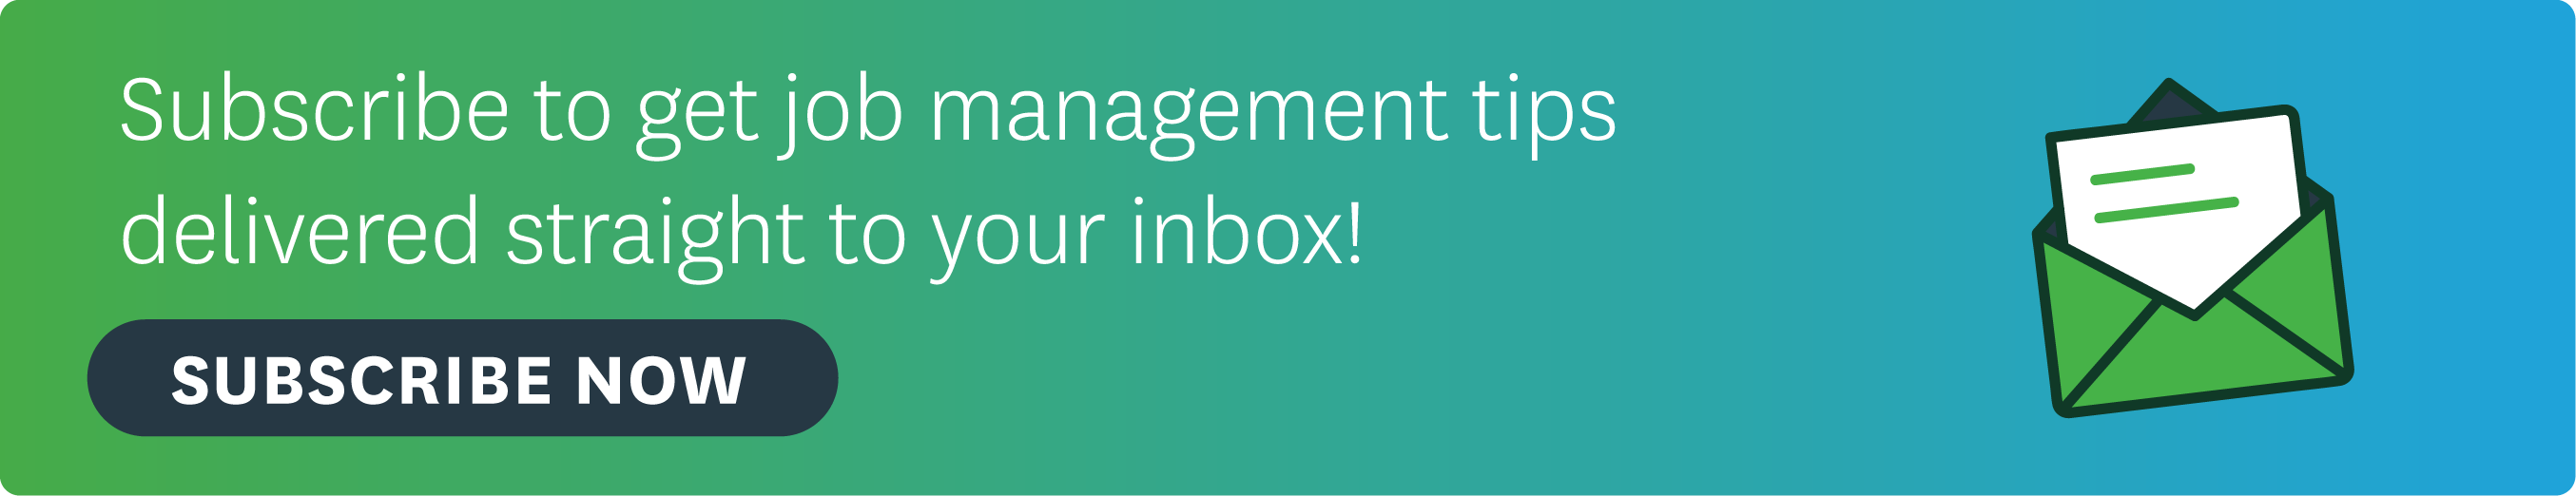 Subscribe to get job management tips delivered straight to your inbox!